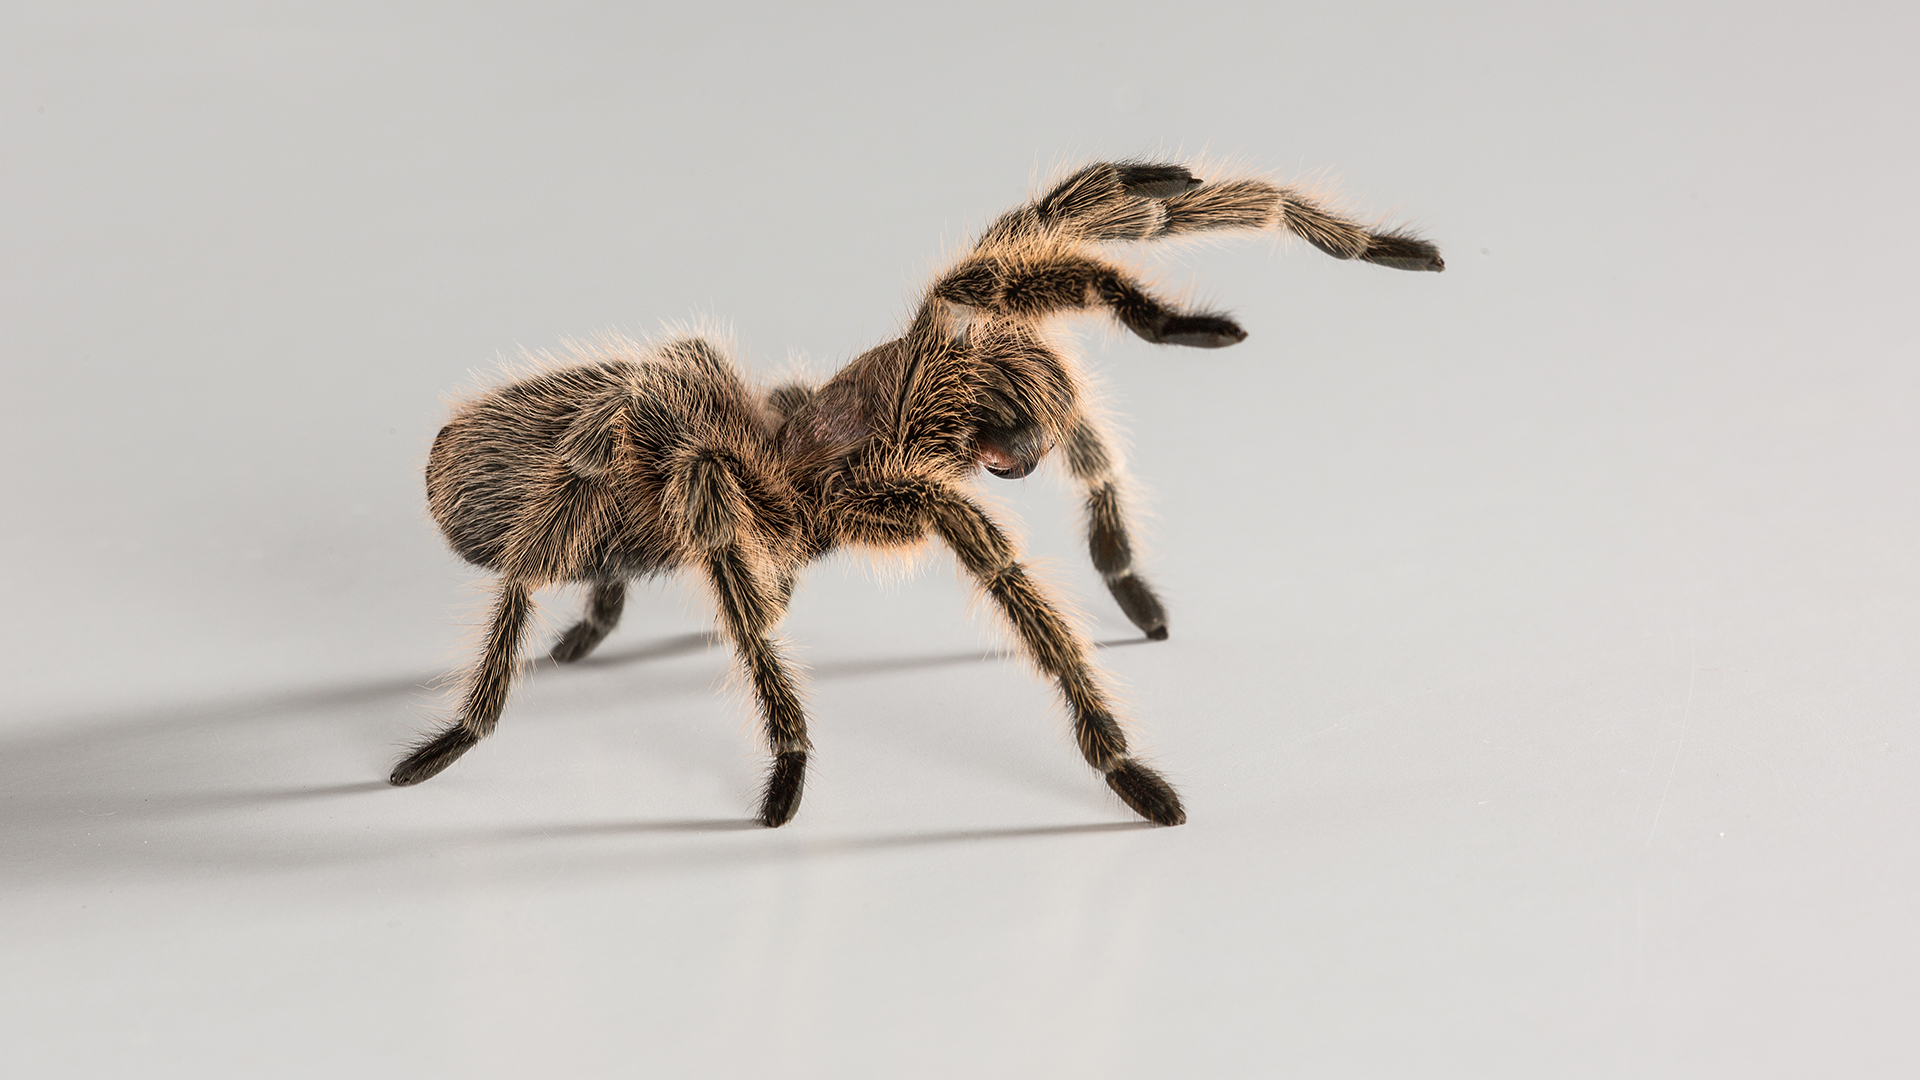 Tarantulas conquered Earth by spreading over a supercontinent, then using its damaged items throughout the ocean WWDMzqkbCMU6qidZxRFYDm